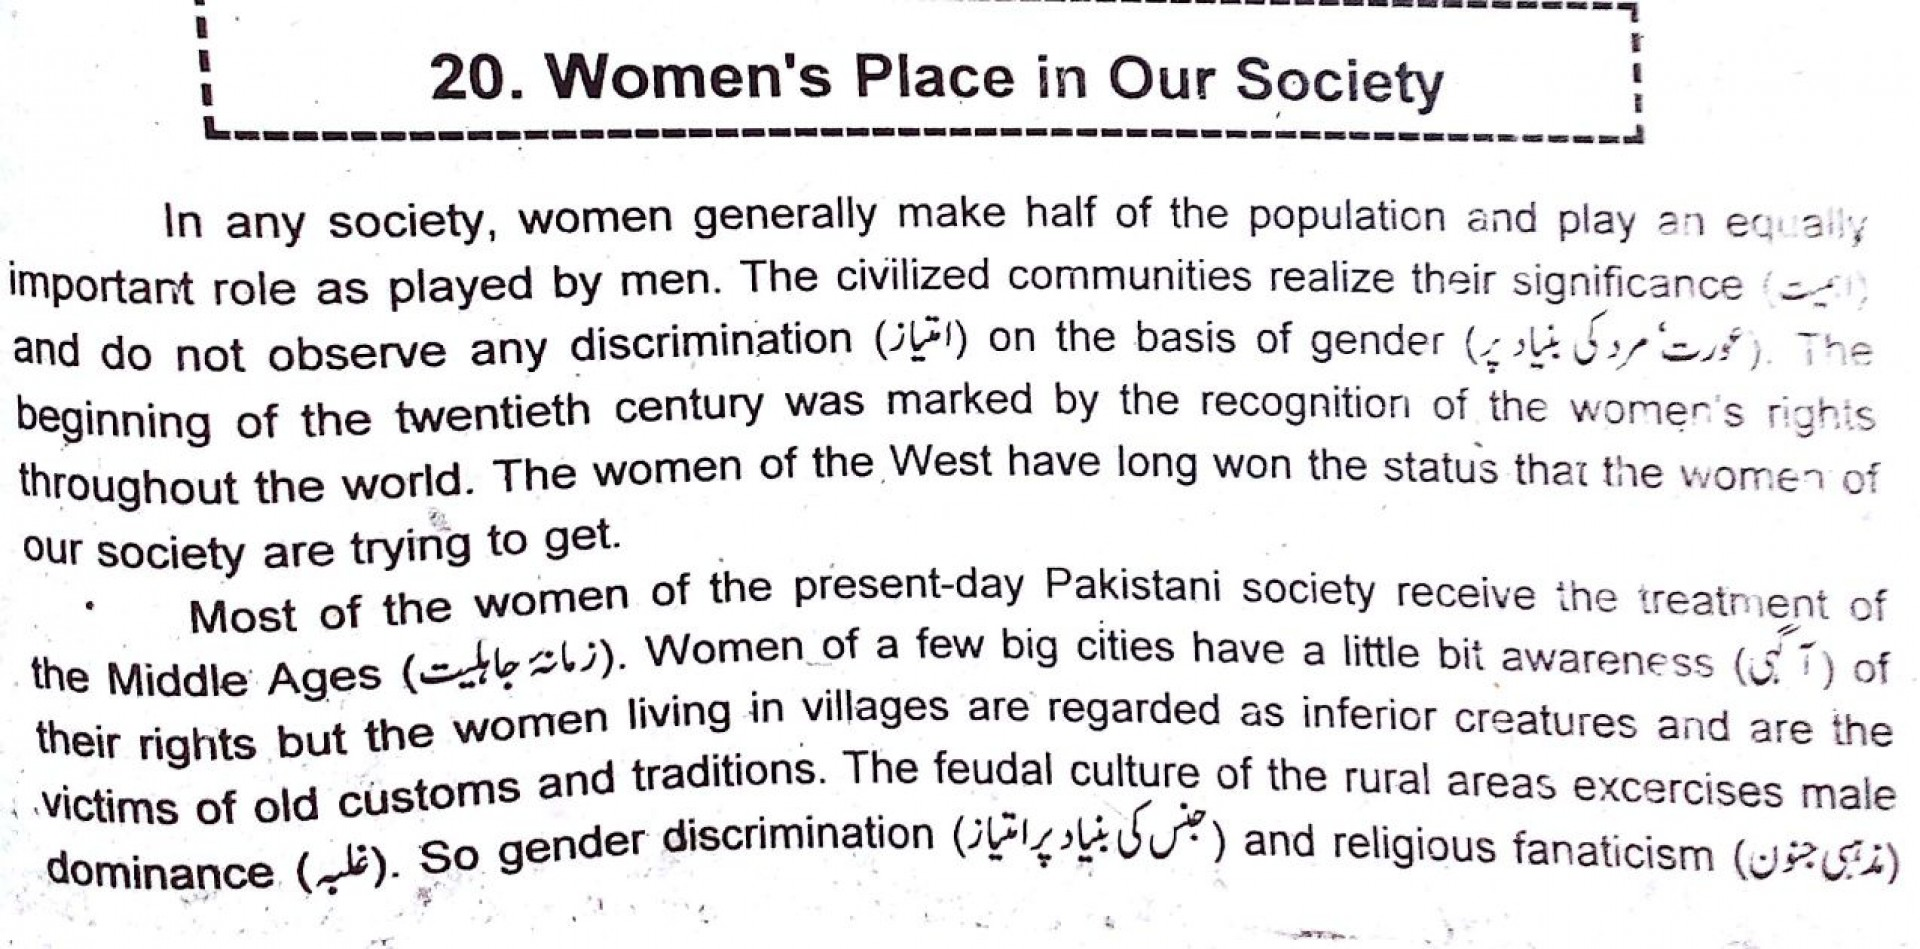 013 Essay Example Woman2bplace2bin2bour2bsociety2b252812529 Womens Sensational Suffrage Women's Movement Topics Campaign 1920